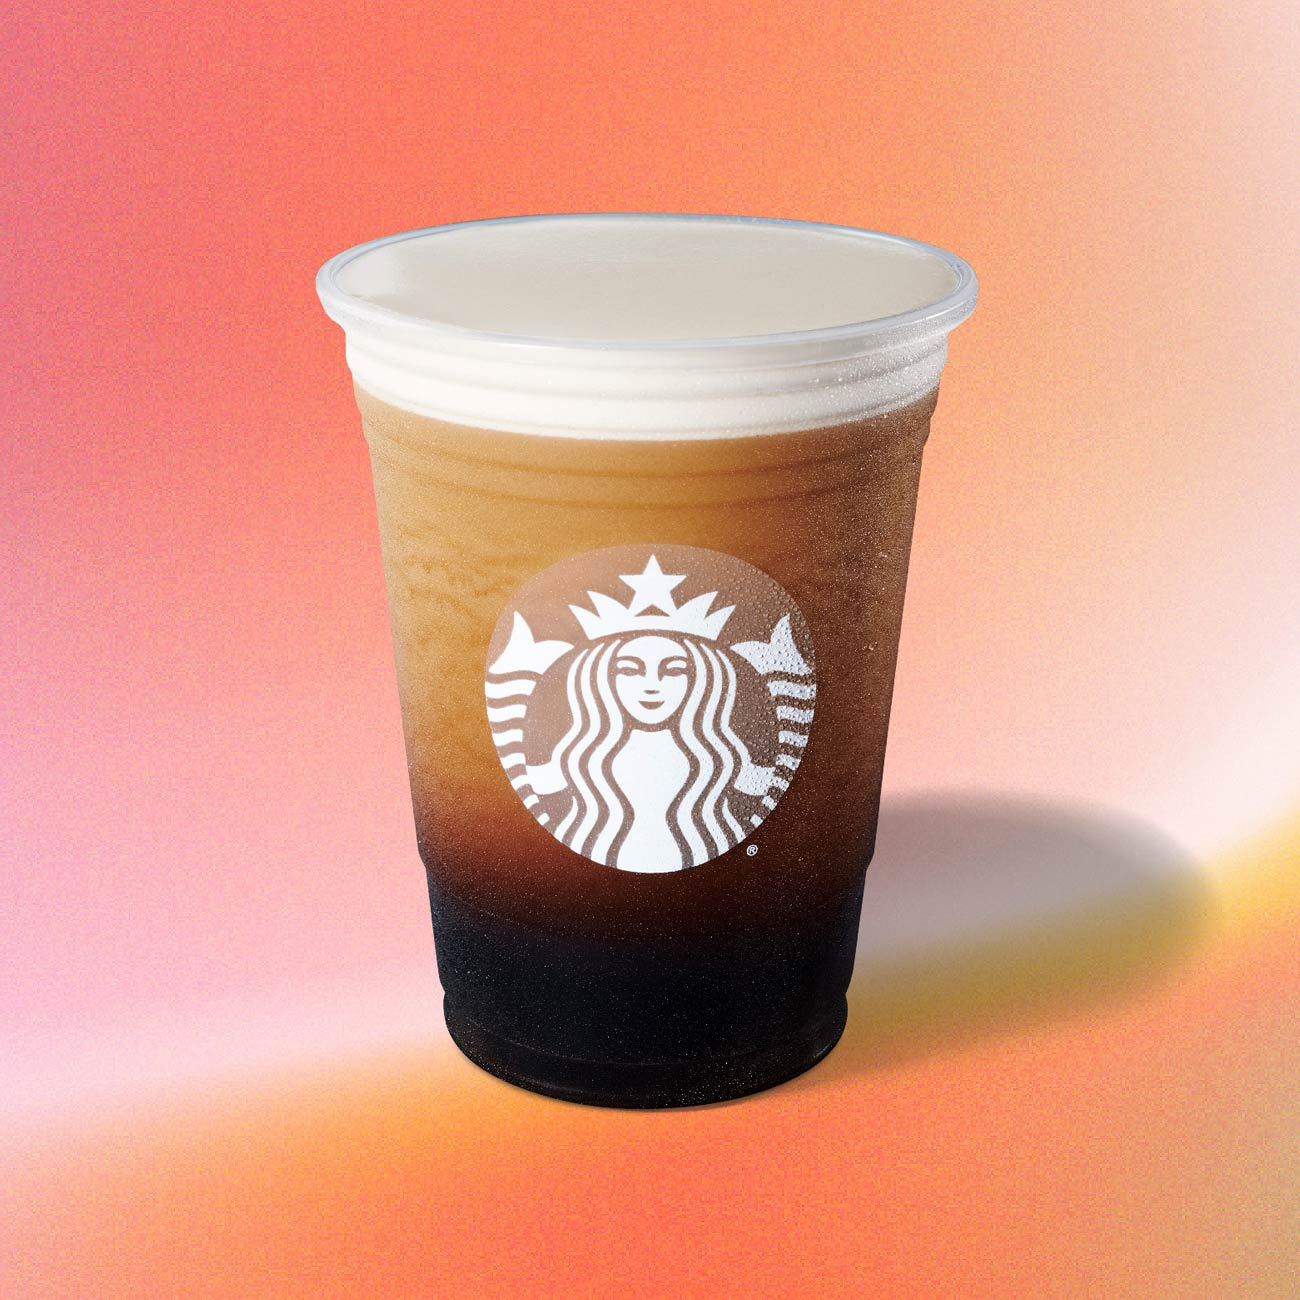 Nitro Cold Brew coffee from Starbucks Hong Kong